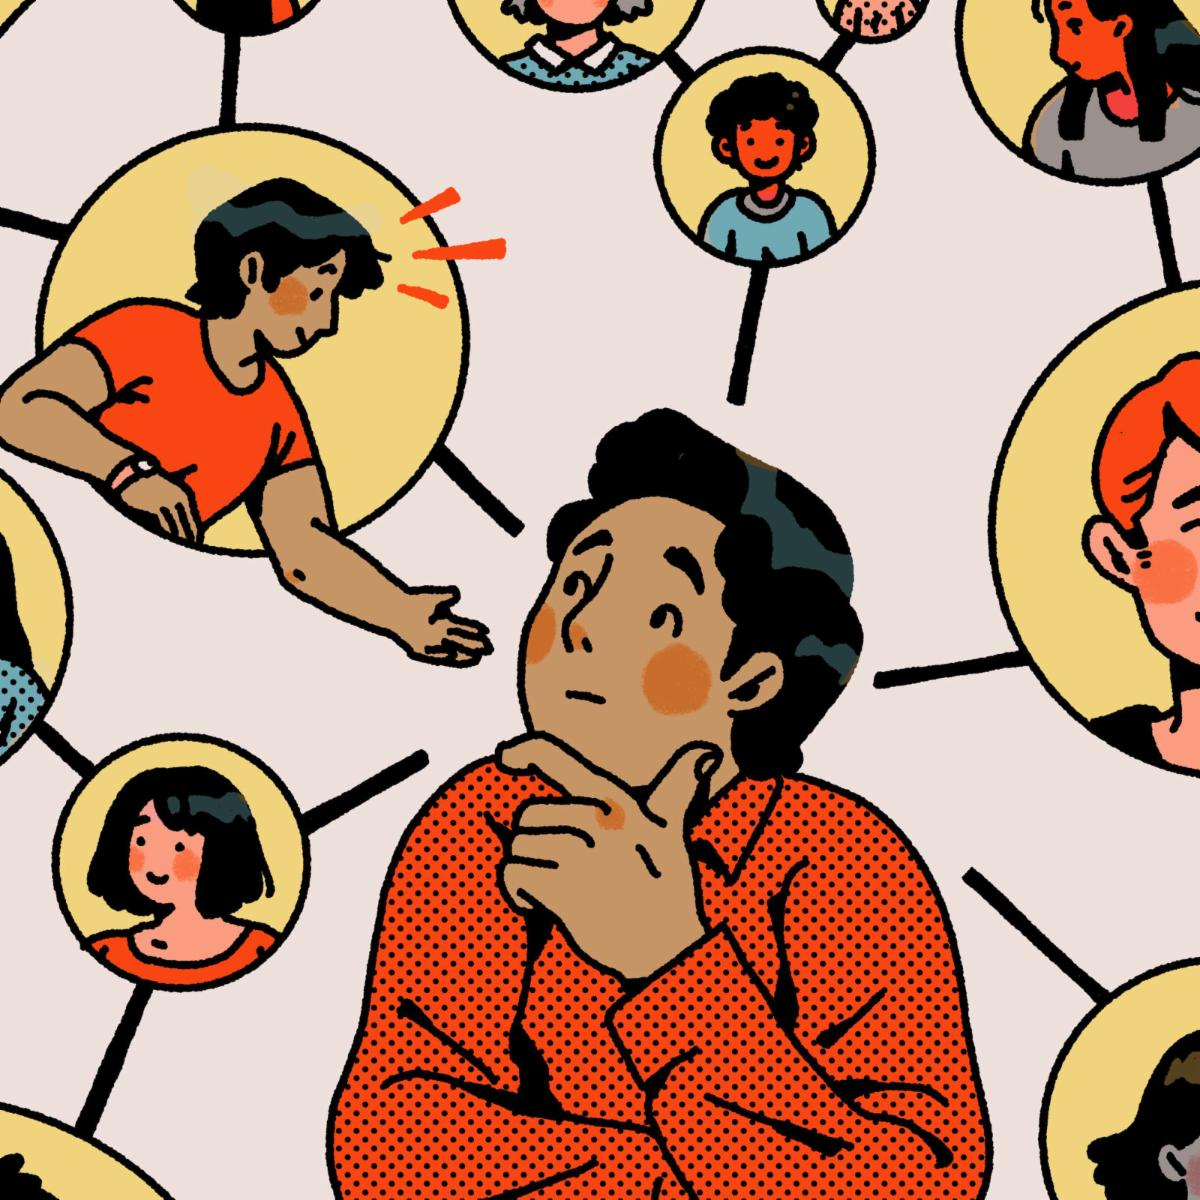 Illustration of a young man considering various mentors in thought bubbles